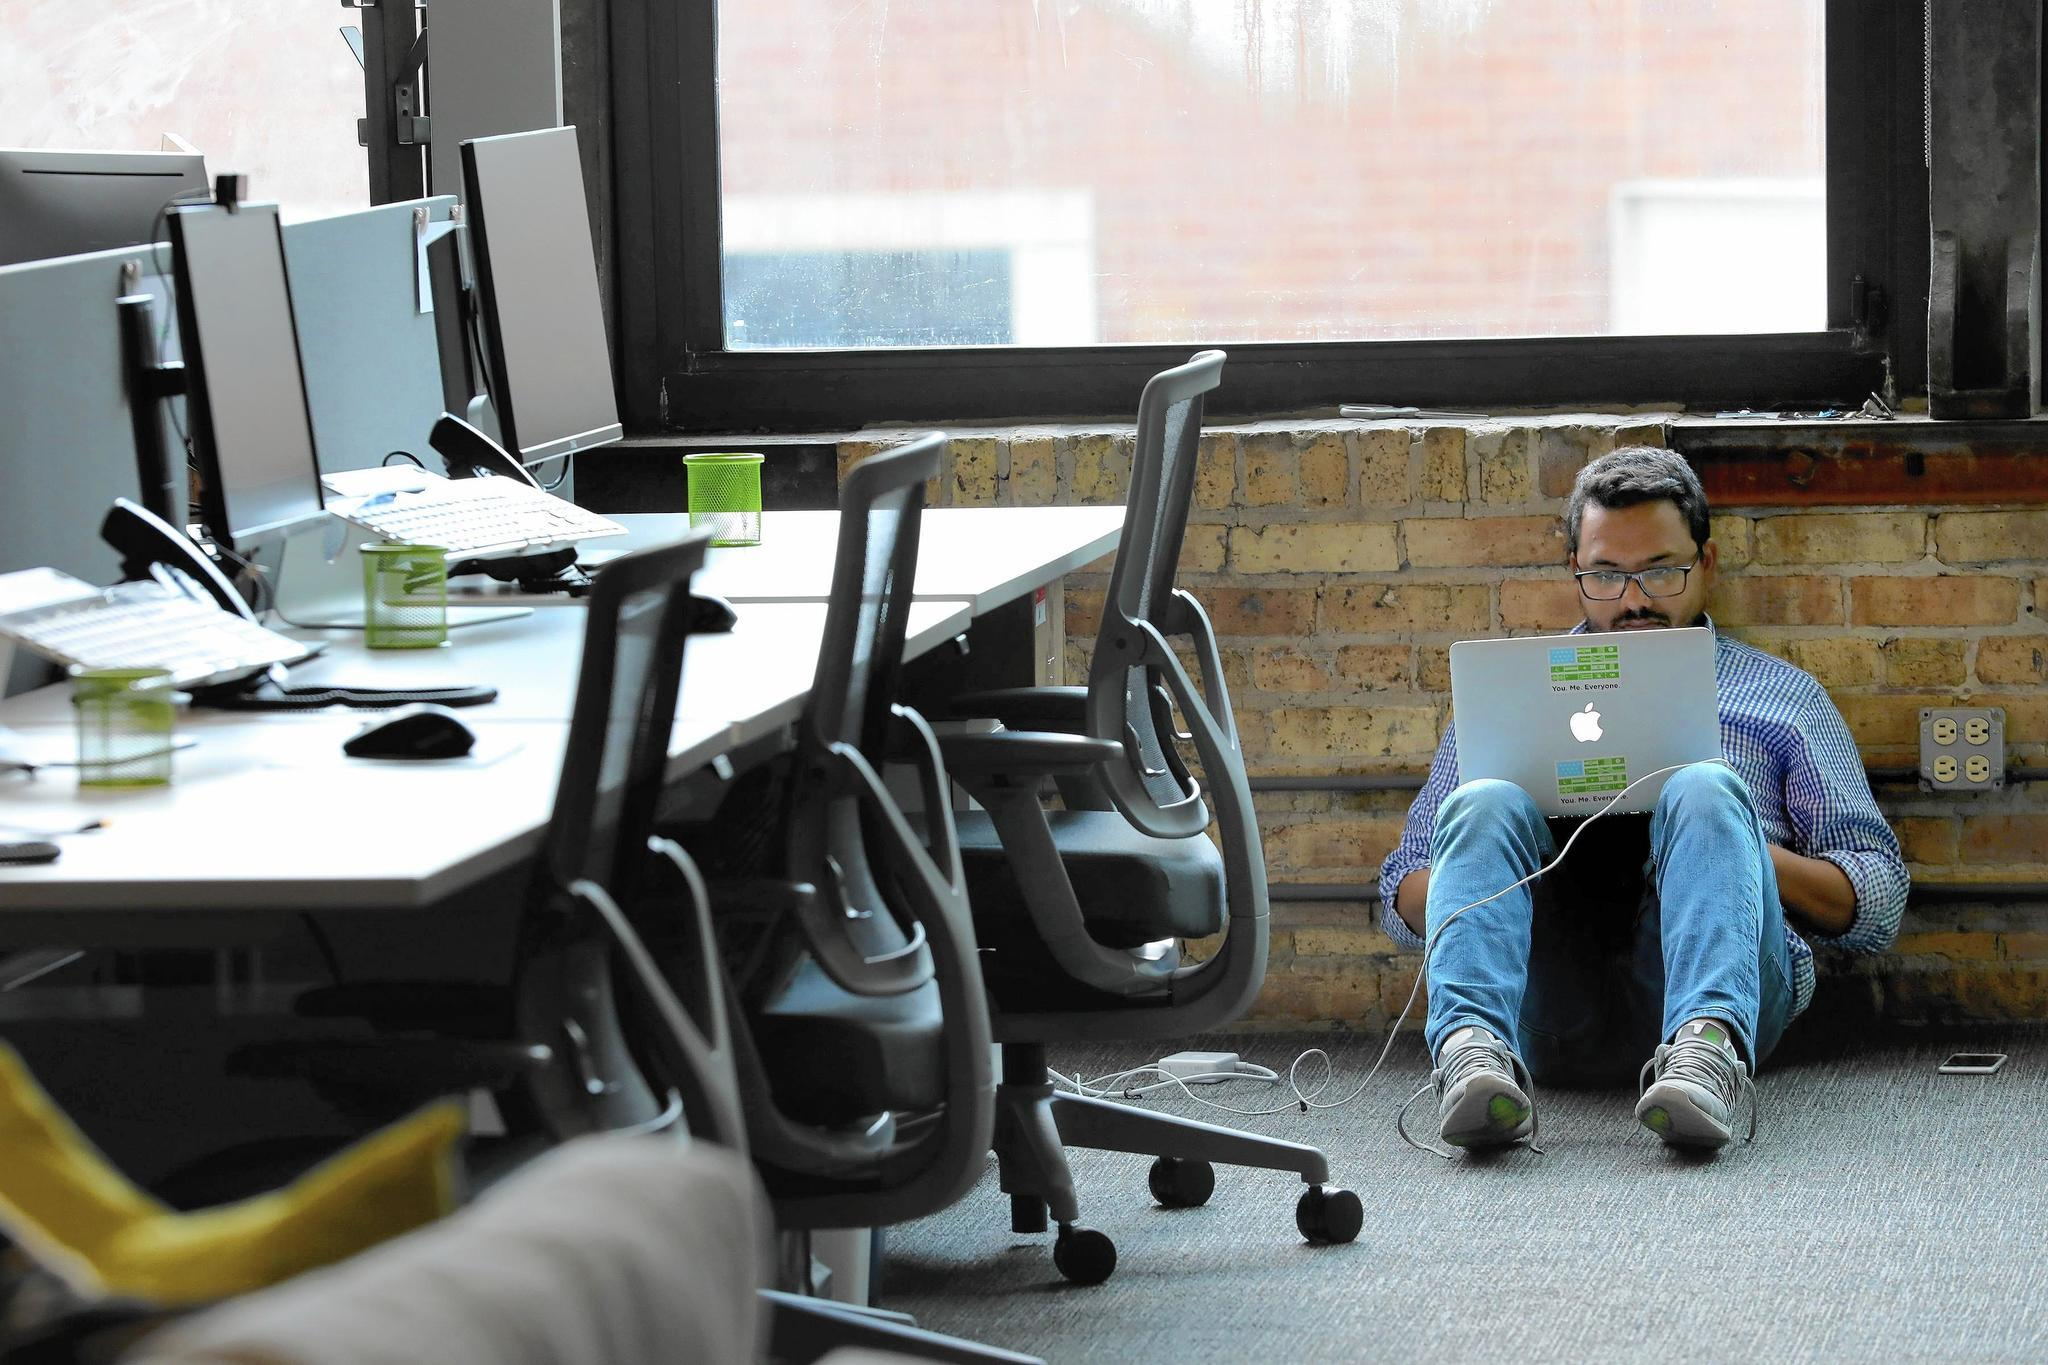 freelance marketplace upwork opens chicago office expects staff of 100 chicago tribune - Office